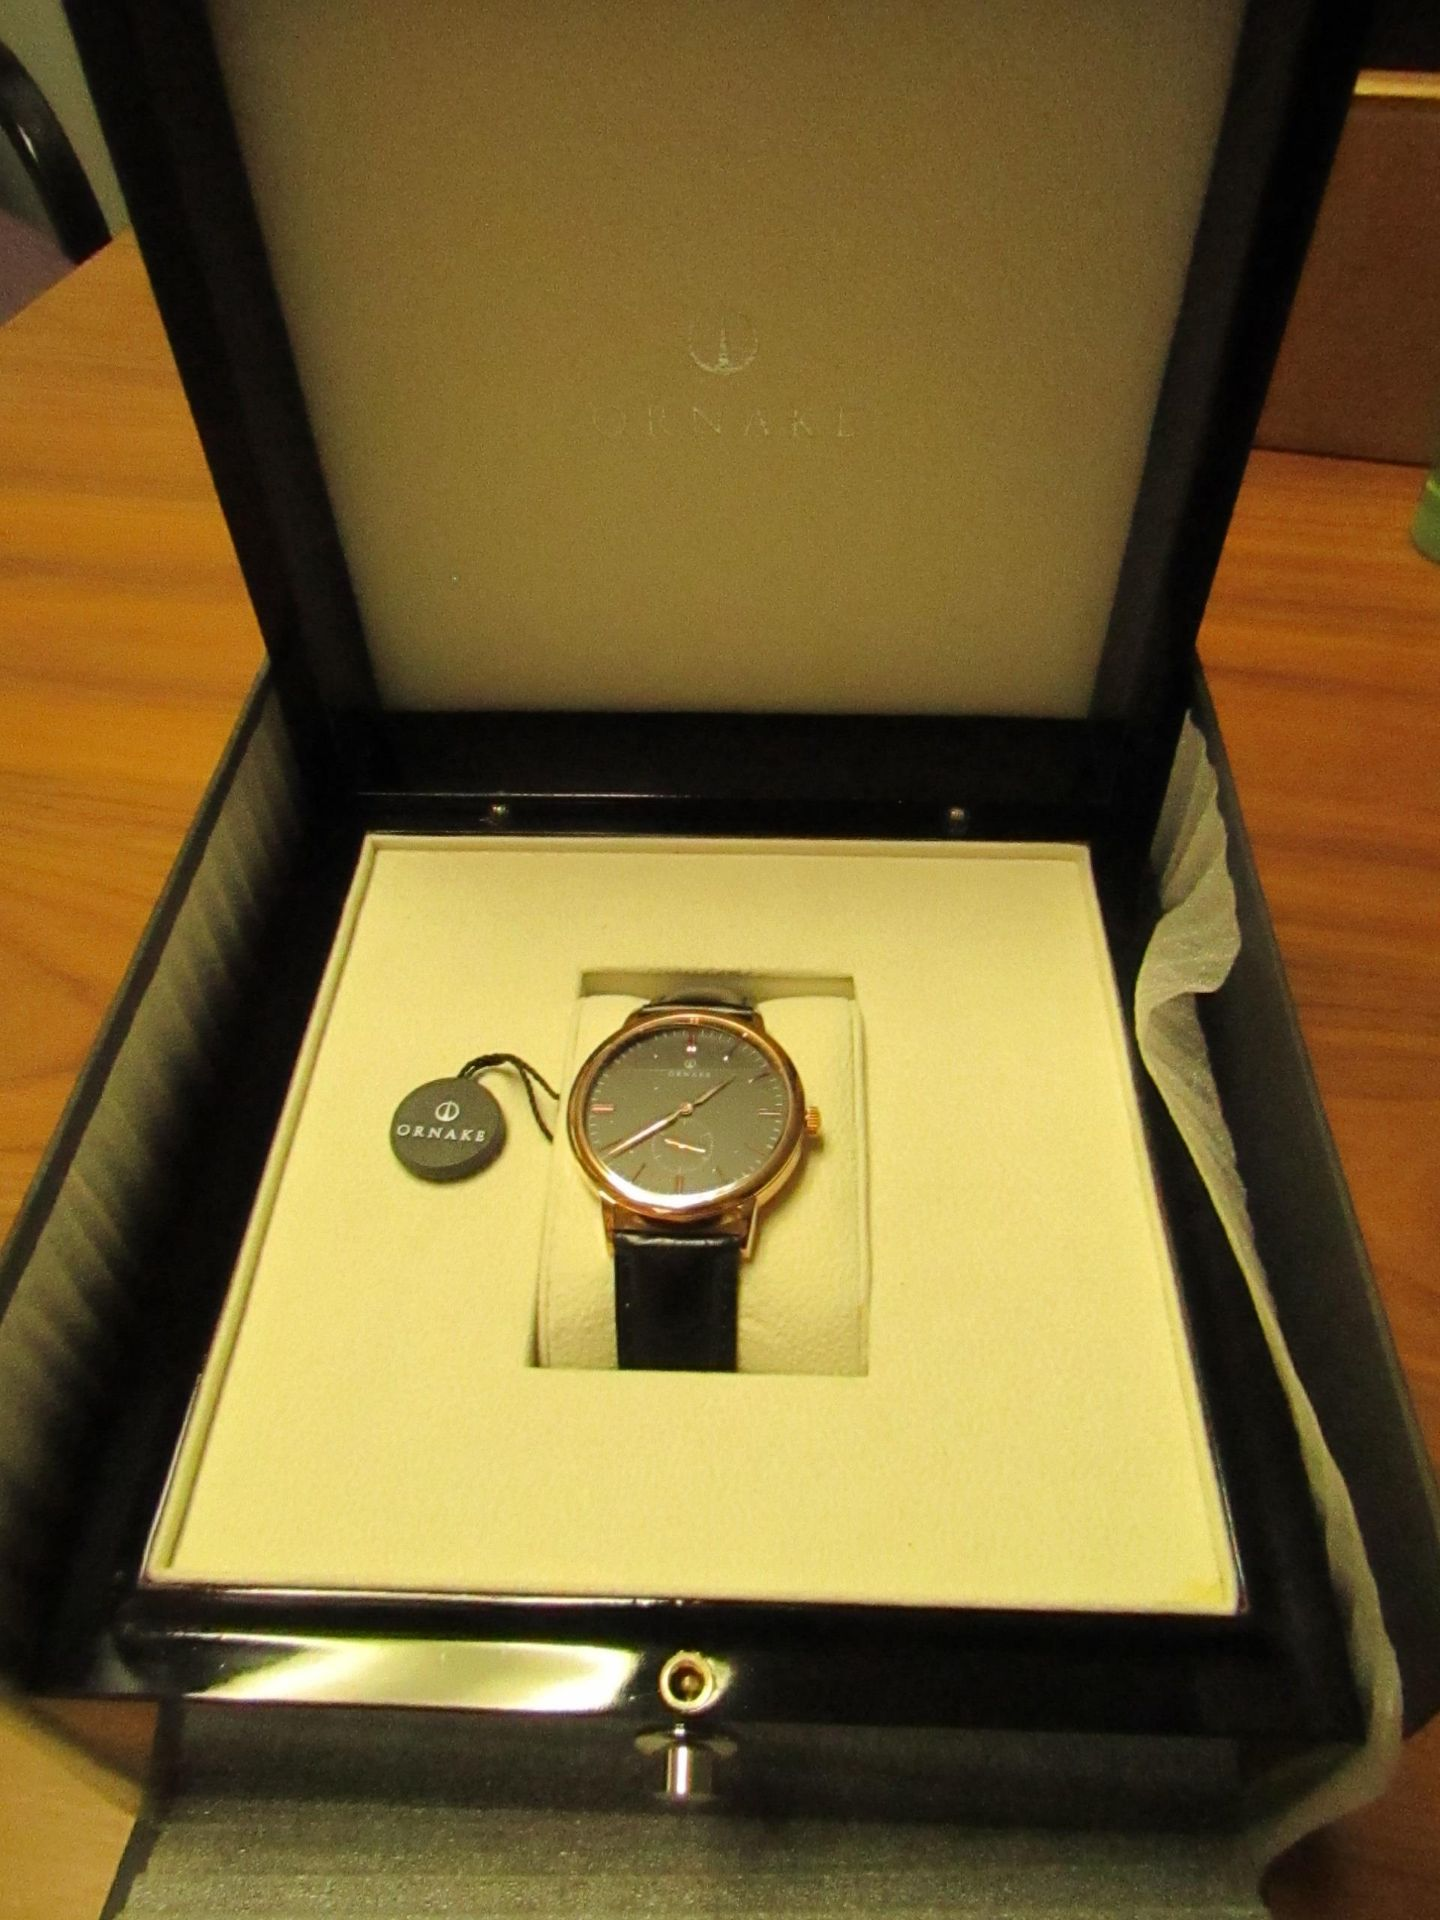 Ornake watch, miyota movement, black and gold with black leather strap, new, Boxed and ticking.